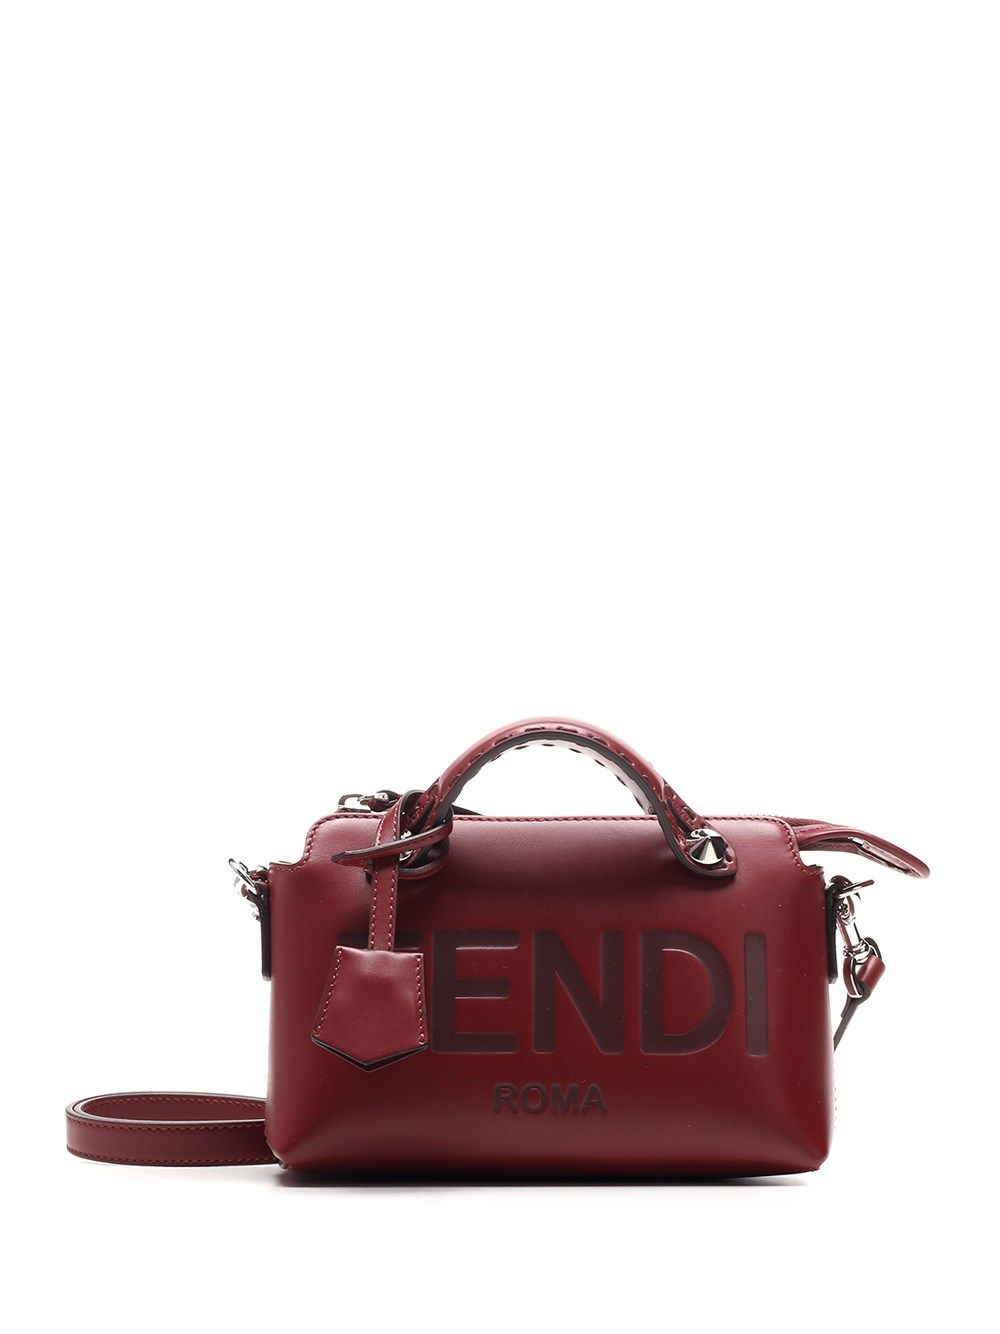 Fendi FENDI WOMEN'S RED OTHER MATERIALS SHOULDER BAG